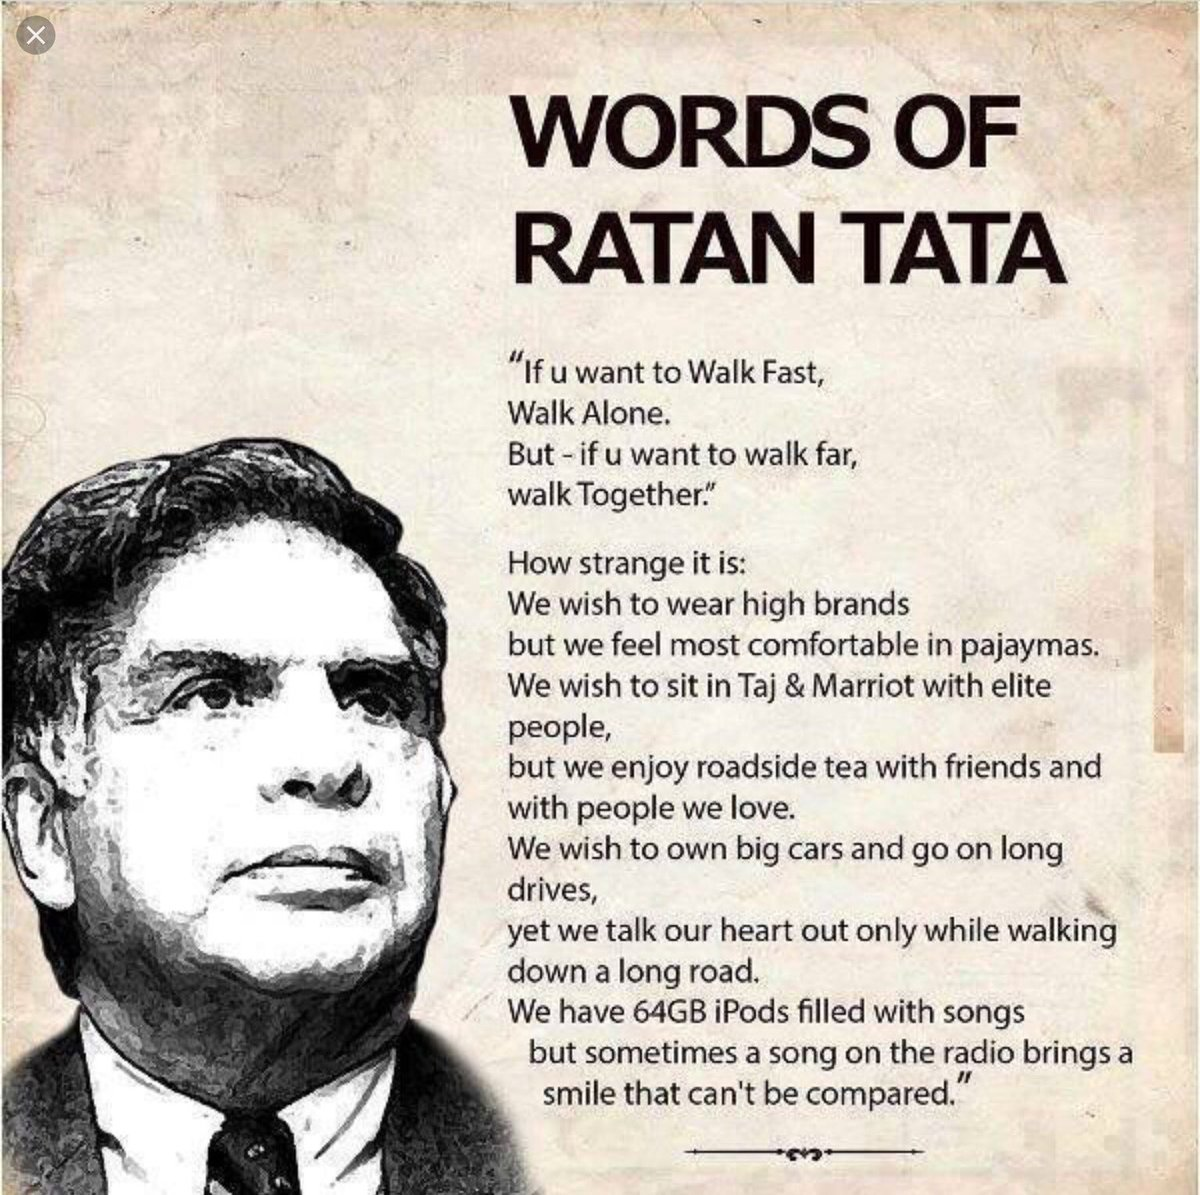 While Tata Steel &amp; Thyssenkrupp merger making headlines,here&#39;s some pearls of wisdom by Ratan Tata   #WednesdayWisdom  #WednesdayMotivation <br>http://pic.twitter.com/Vzzrm9O1cY